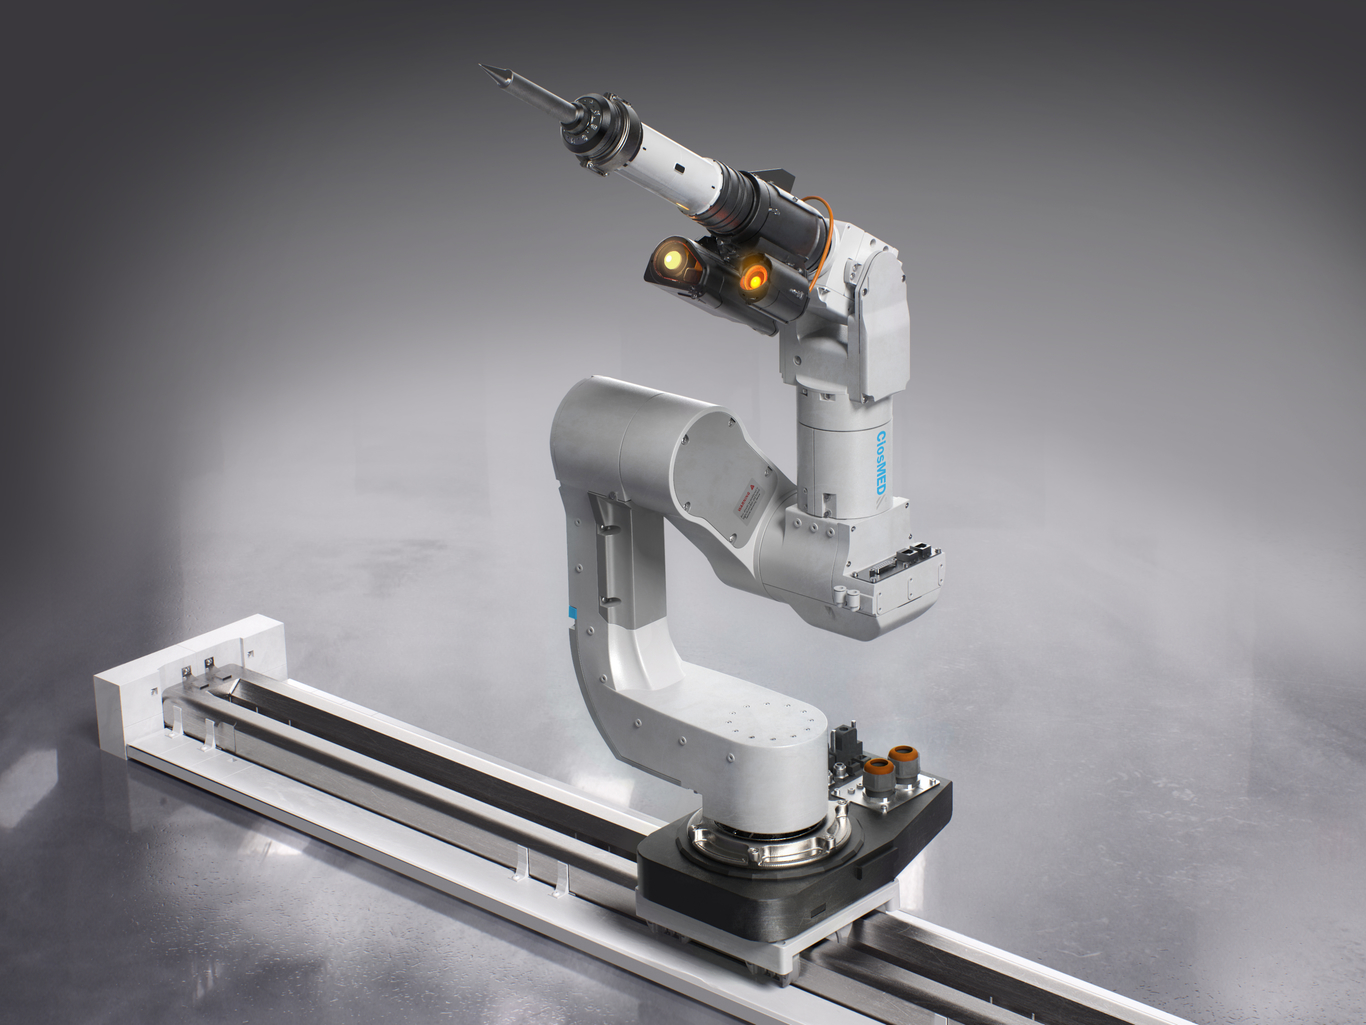 Vincenzobarkasy surgical arm concept 1 fb79f6cc rwmi